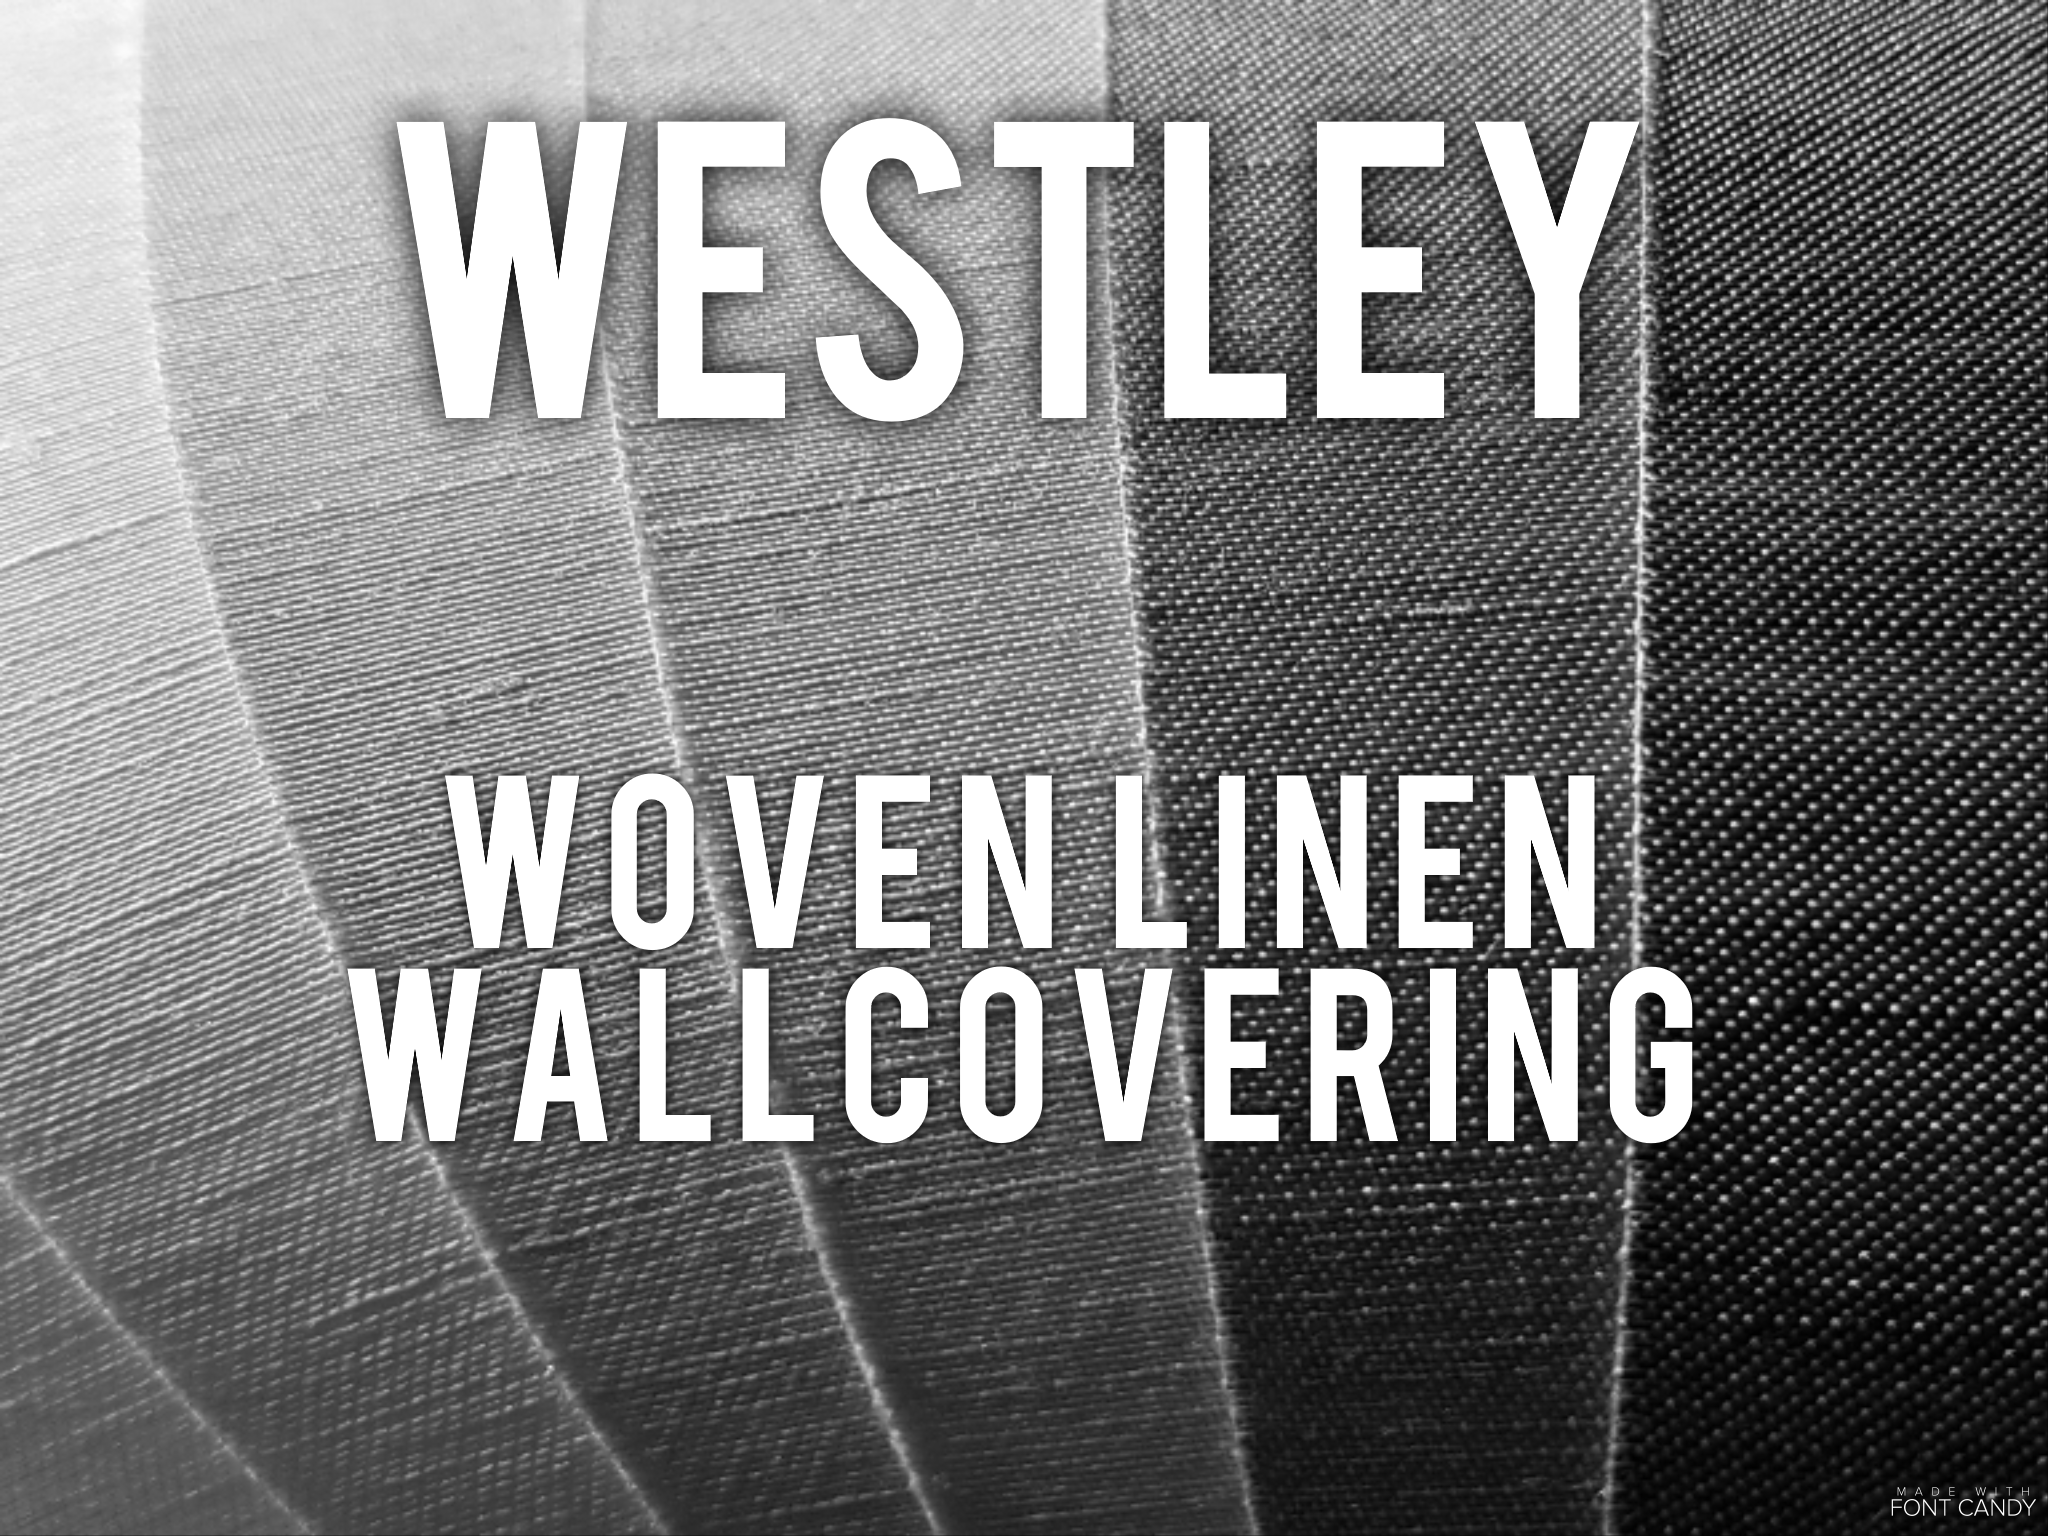 Westley - Woven linen wallcovering